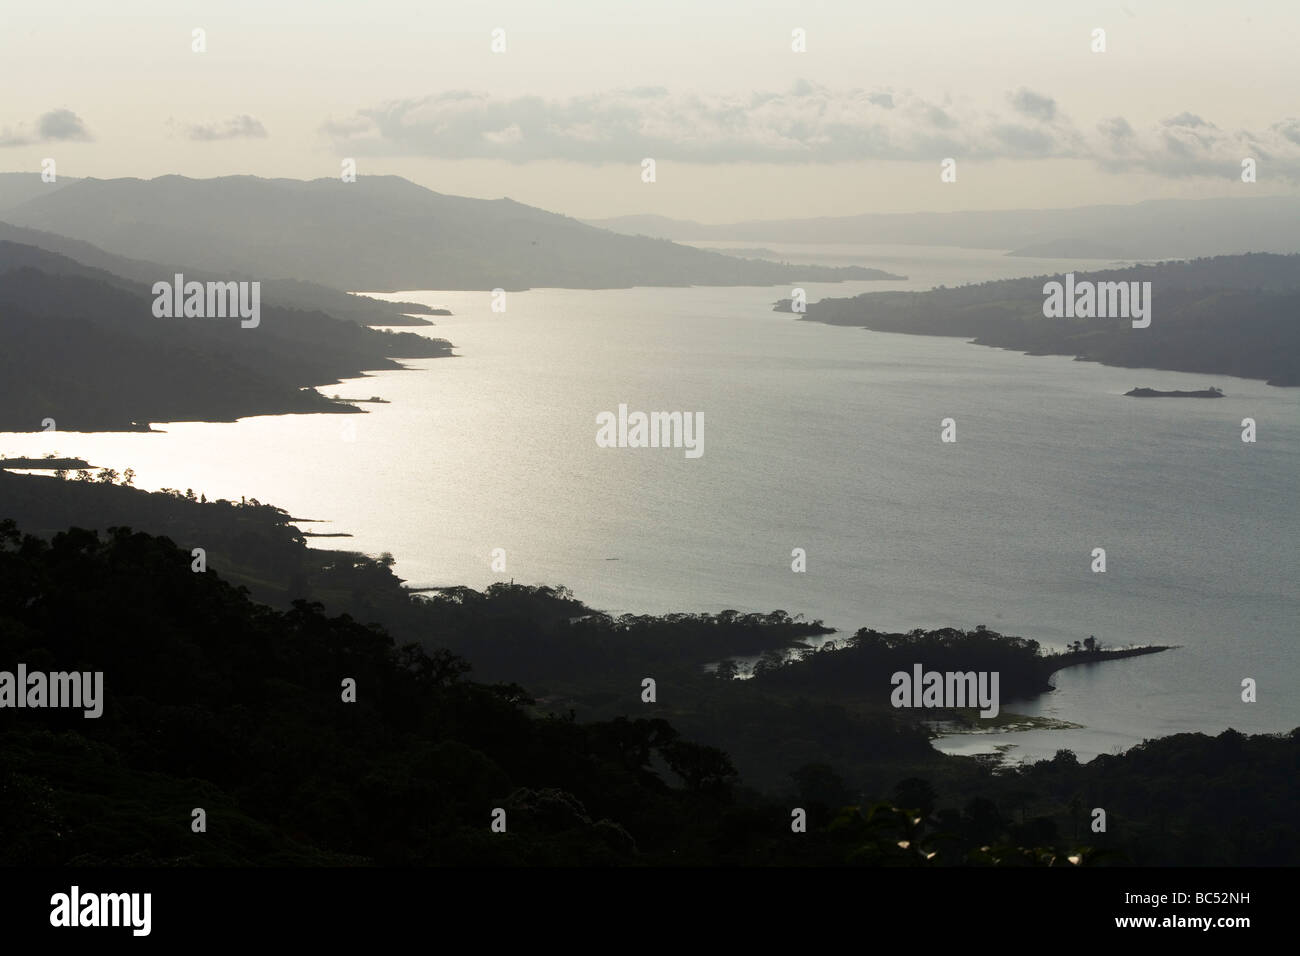 A view looking from Arenal Volcano along the length of Lake Arenal in Costa Rica - Stock Image